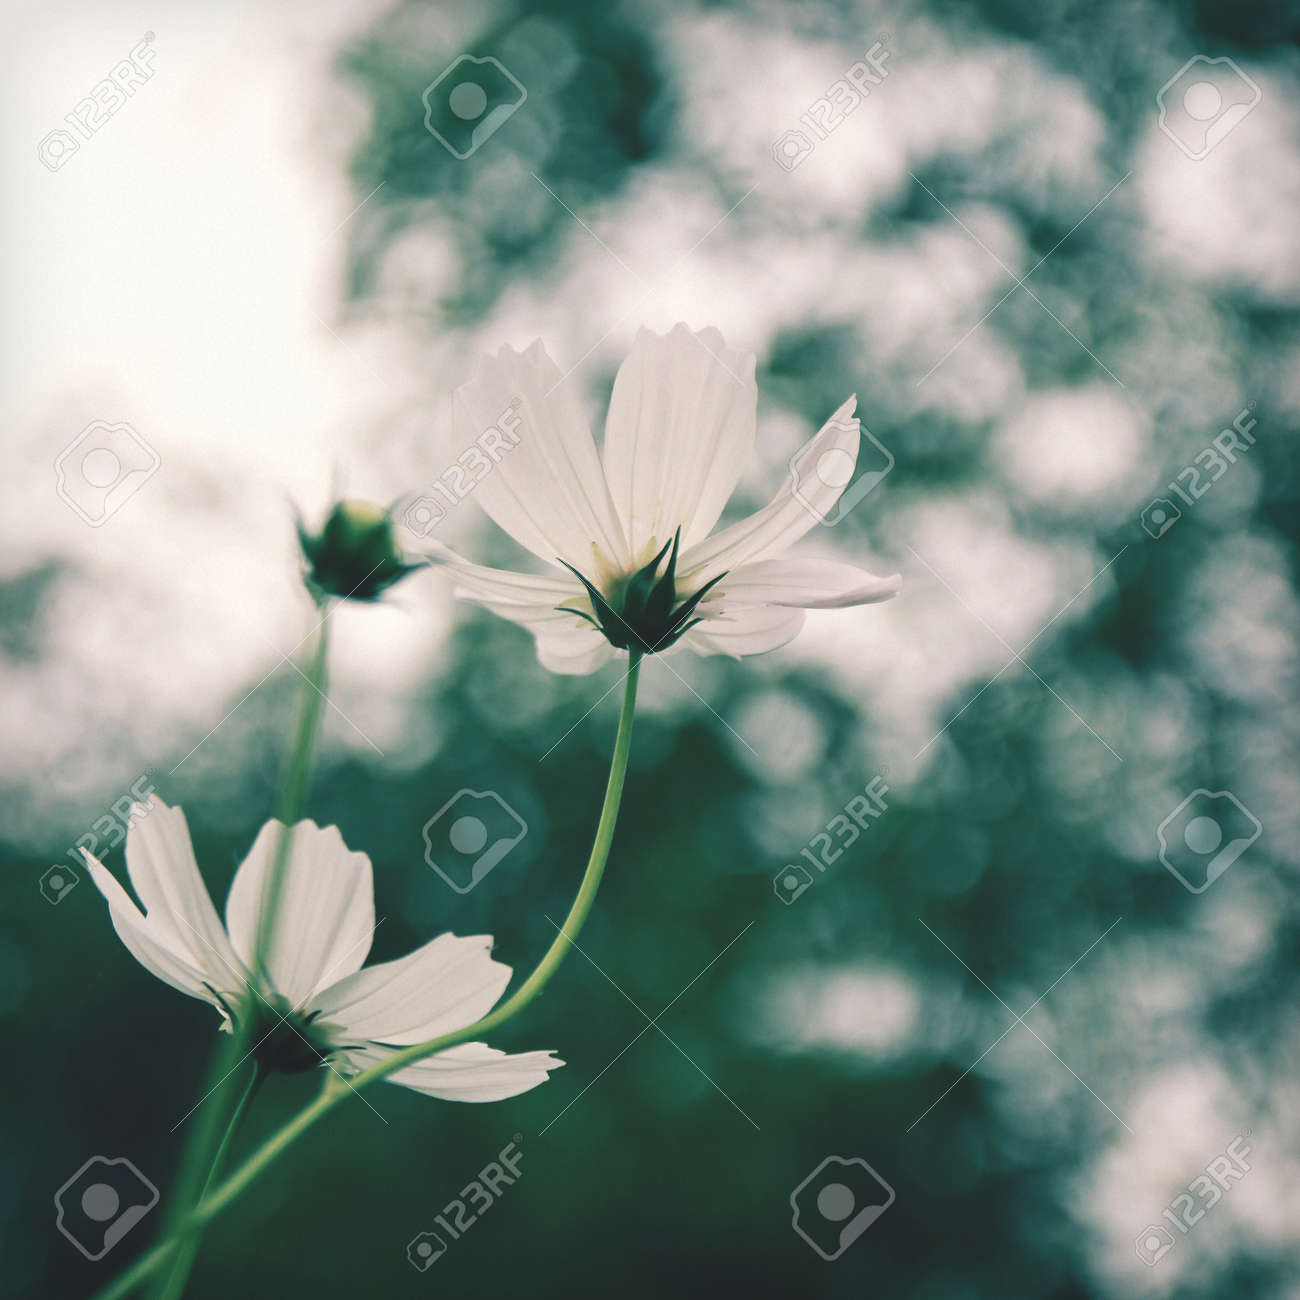 White Cosmos Flowers In Vintage Retro Tone Stock Photo Picture And